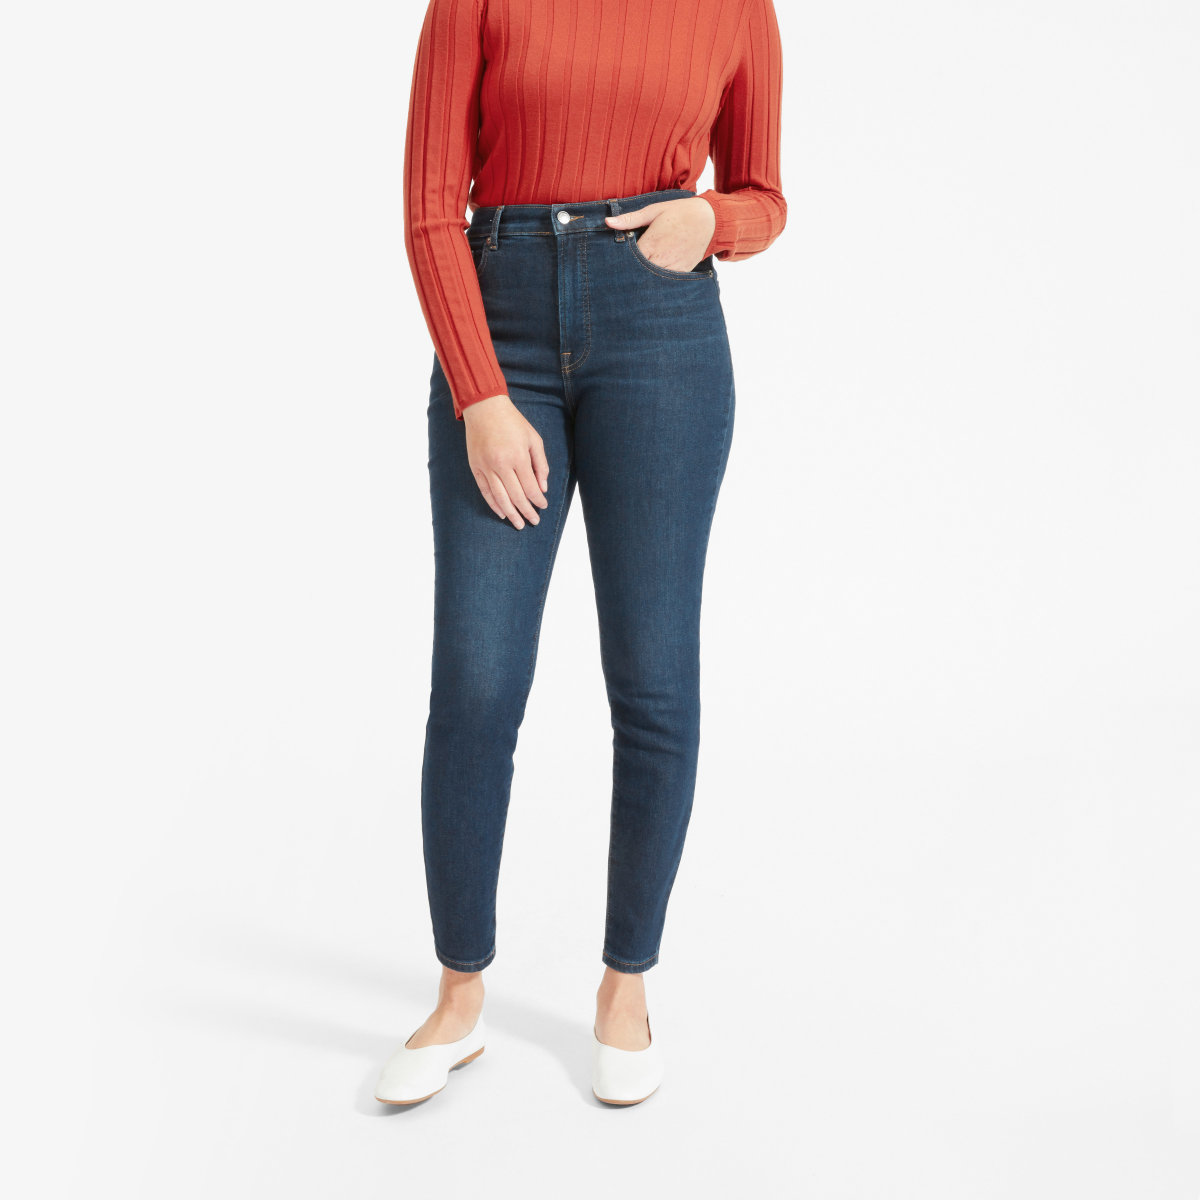 everlane-high-rise-skinny-stretch